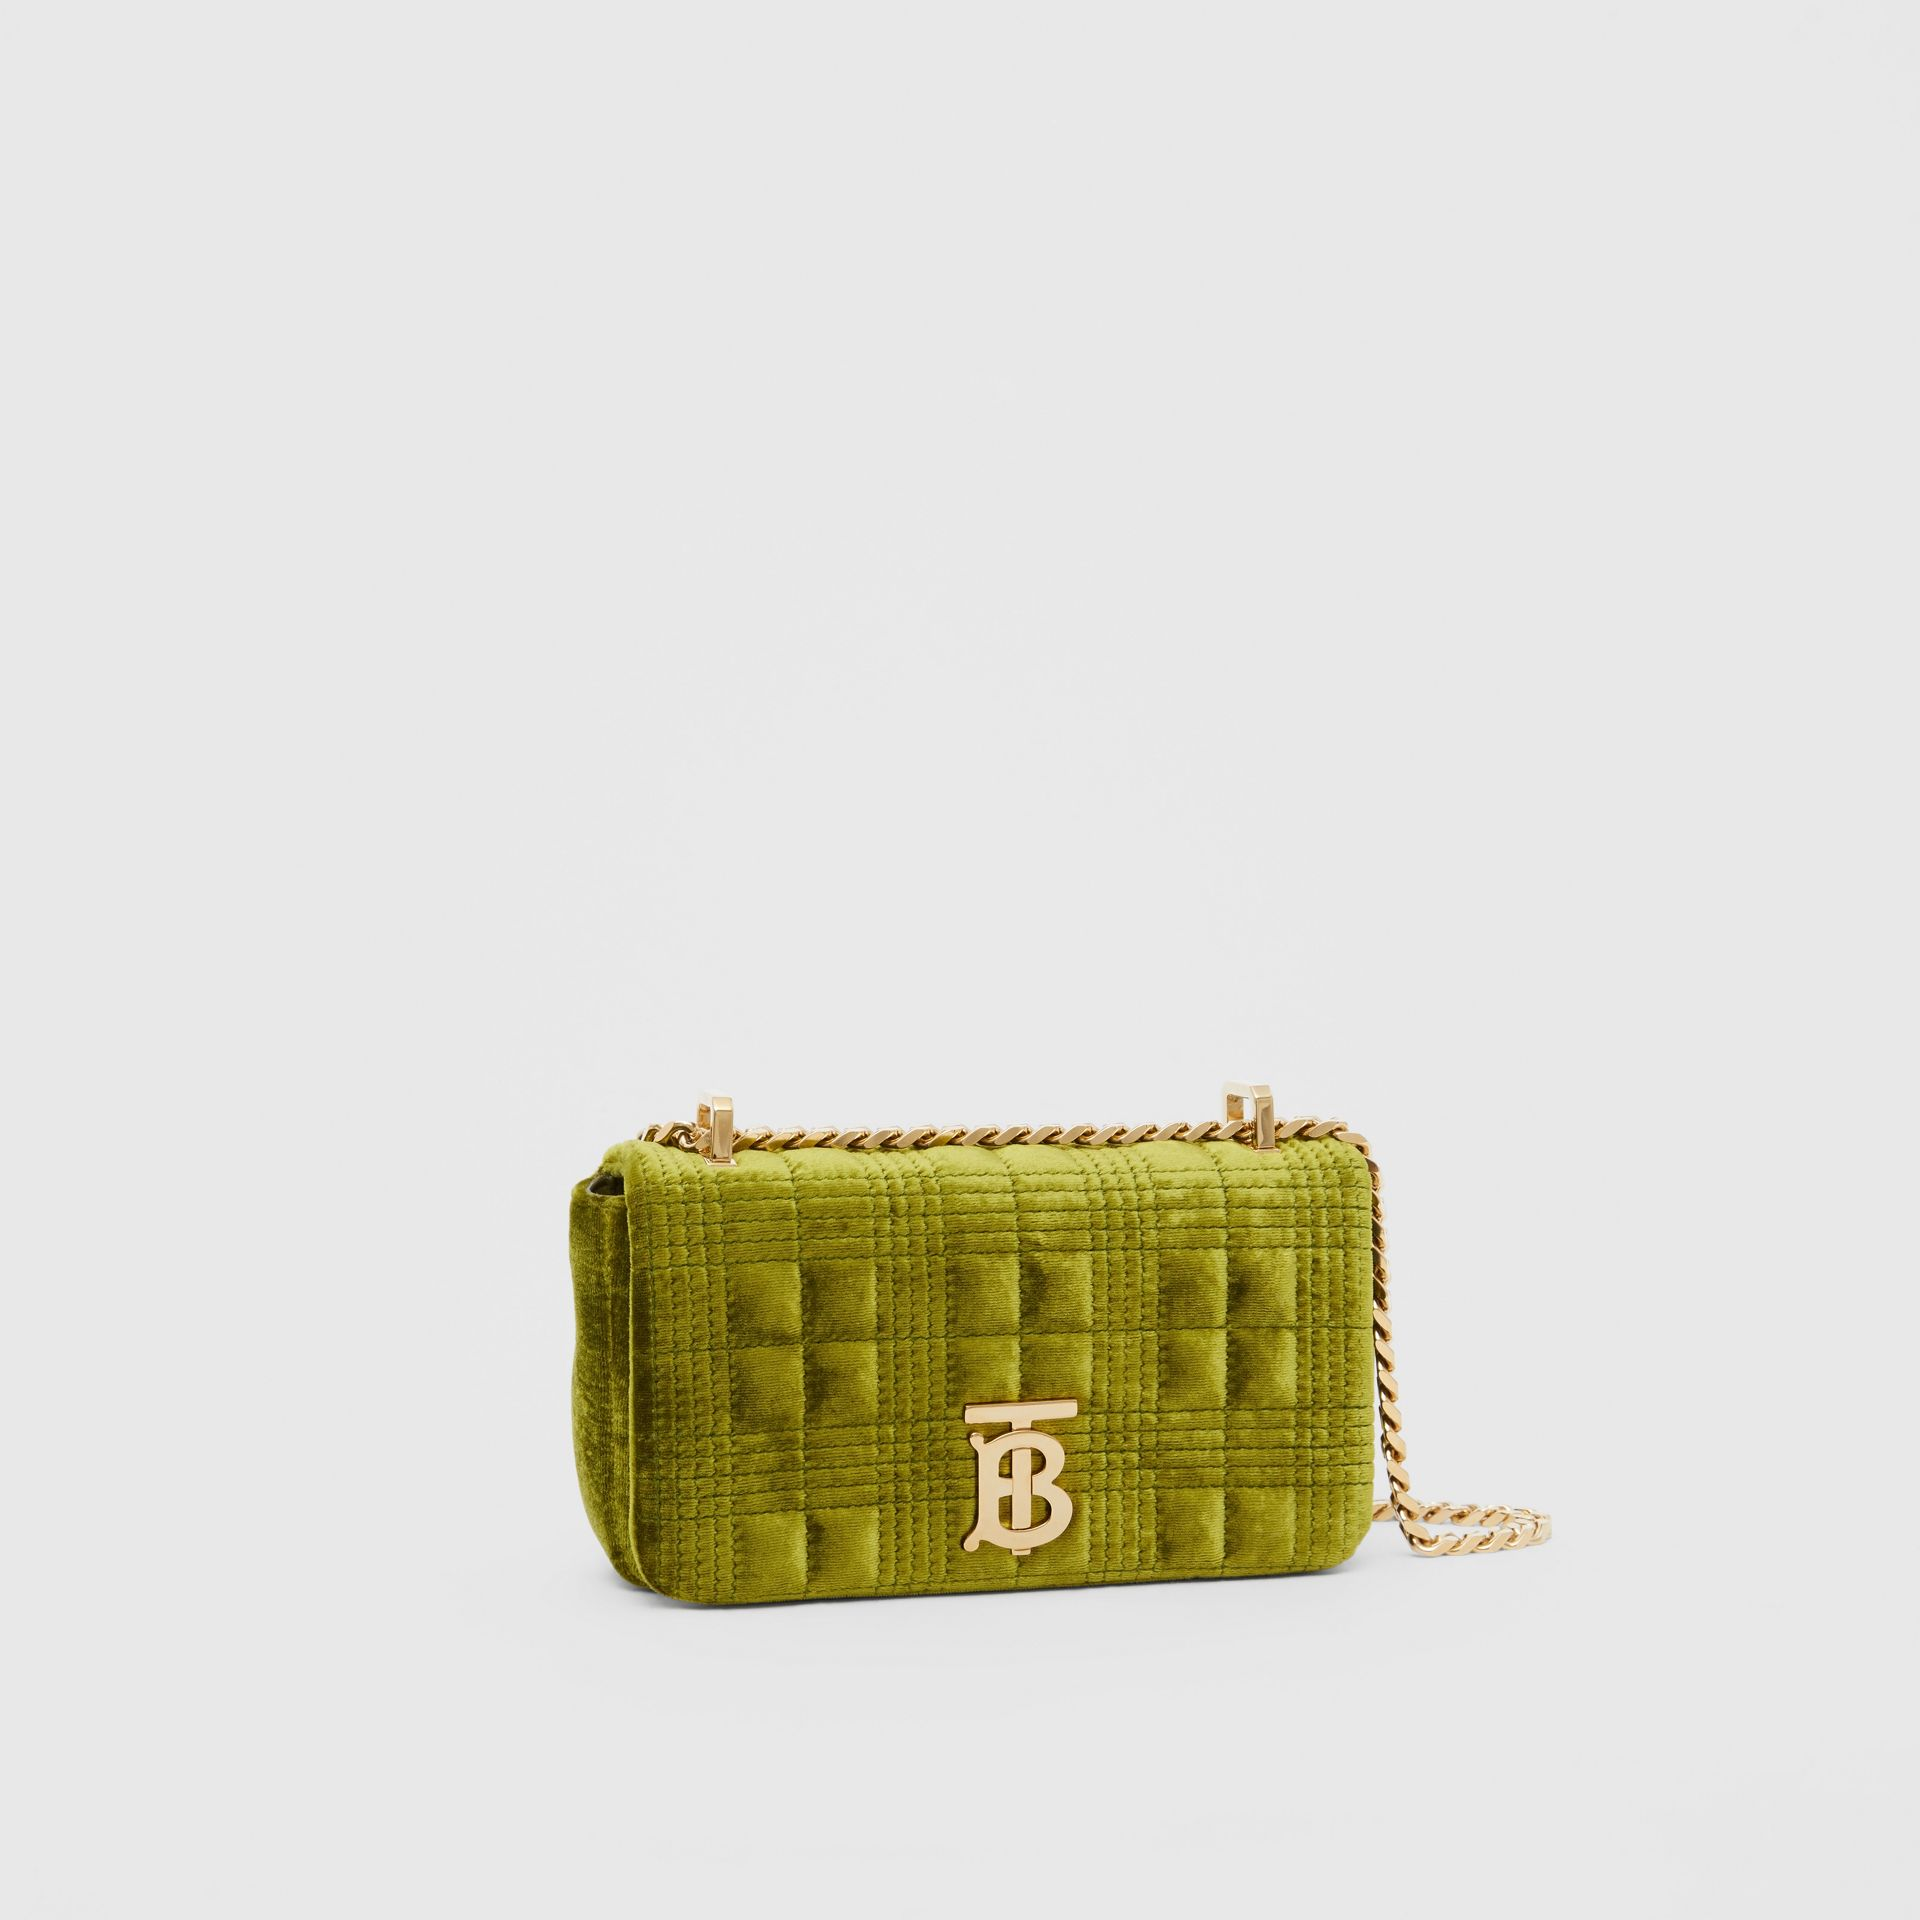 Mini Quilted Velvet Lola Bag in Juniper Green - Women | Burberry - gallery image 6